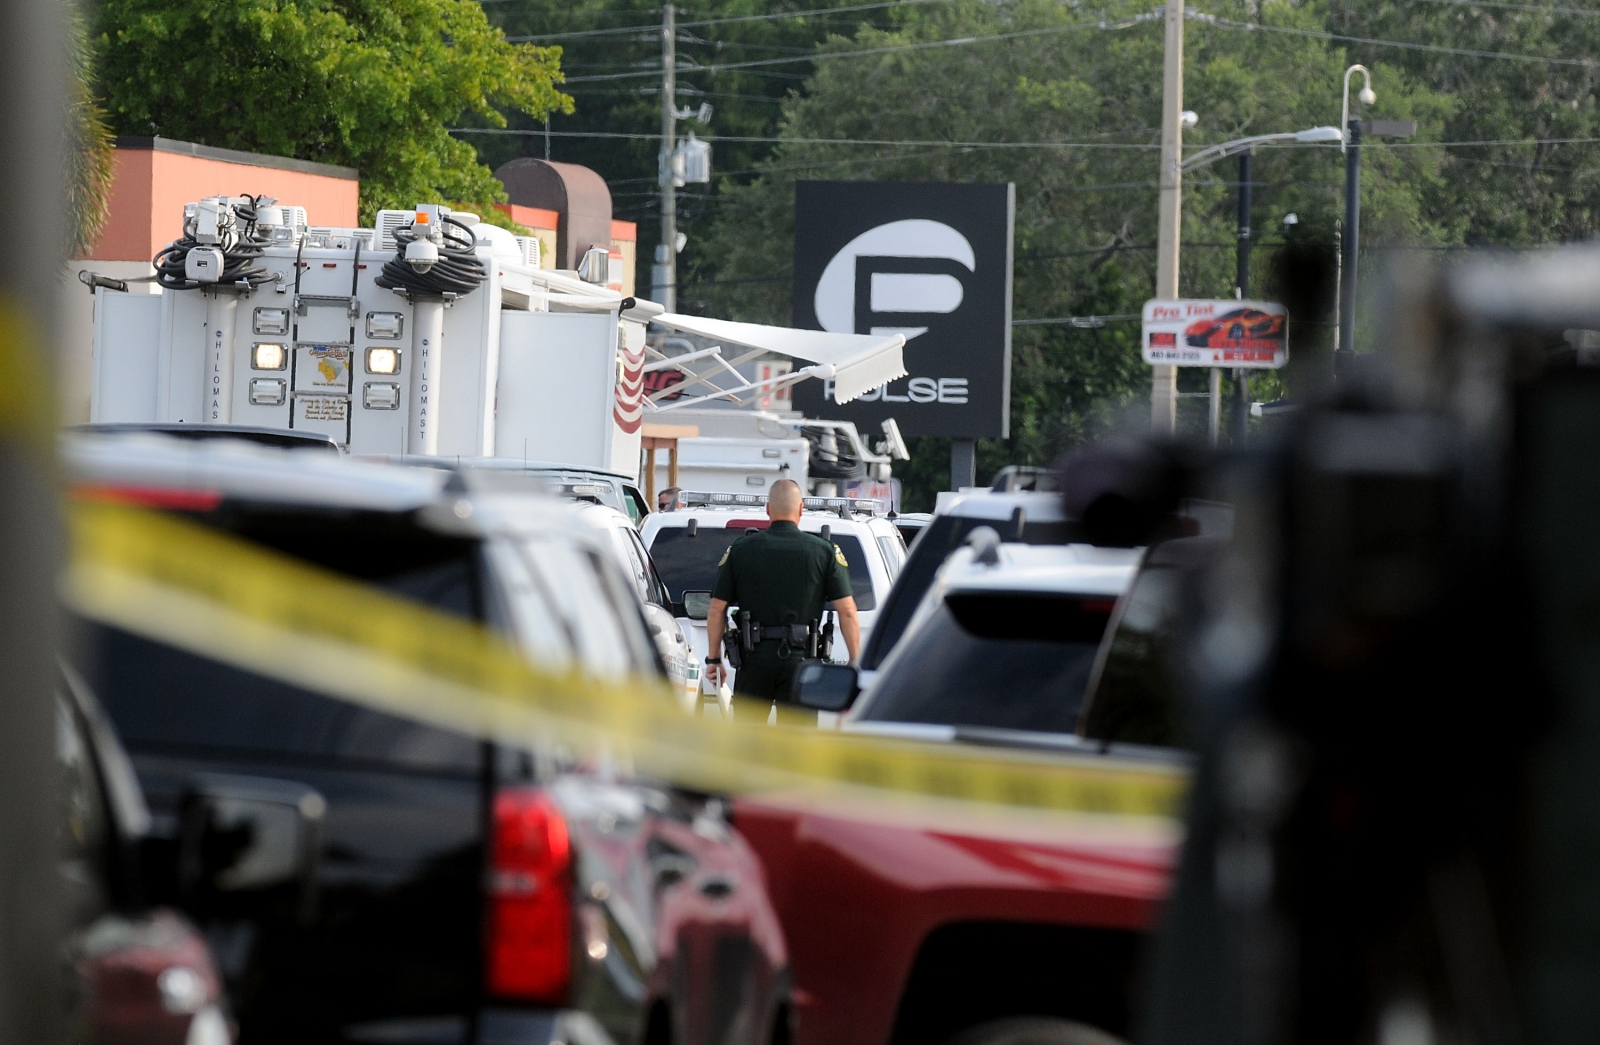 Police seen outside Pulse, Orlando